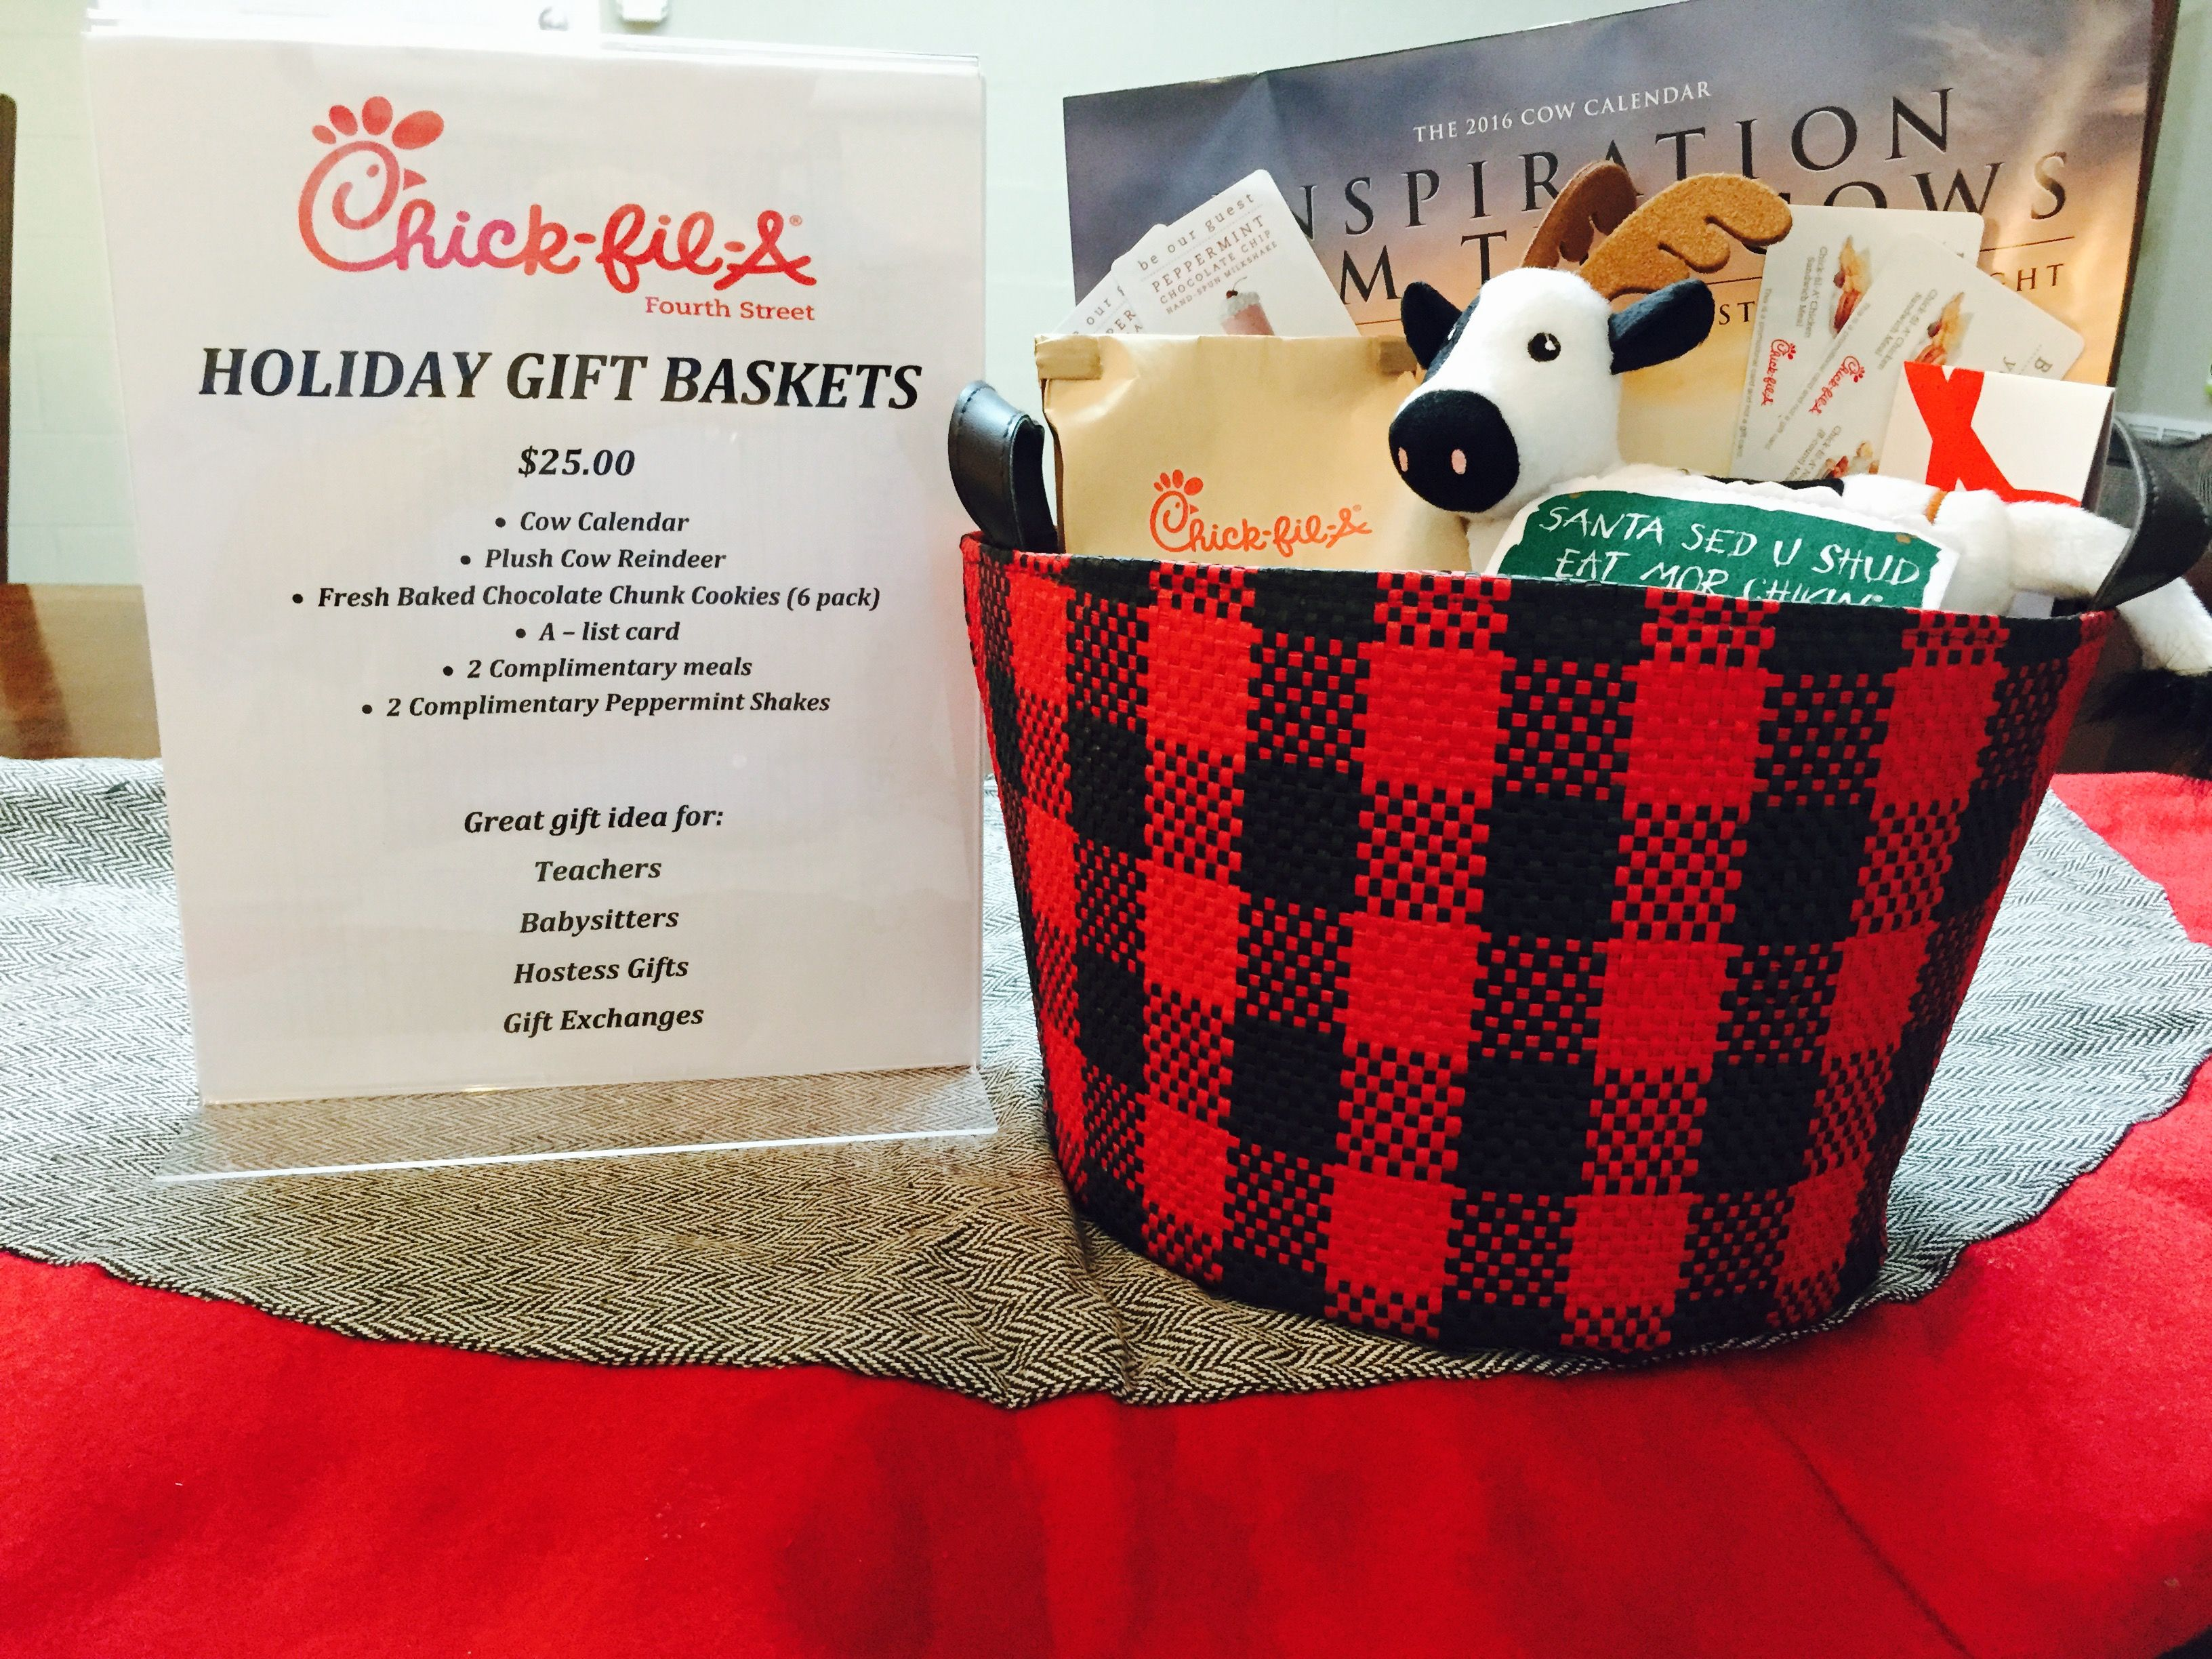 Holiday Gift Baskets At 4Th Street Chick Fil A Over $50 In